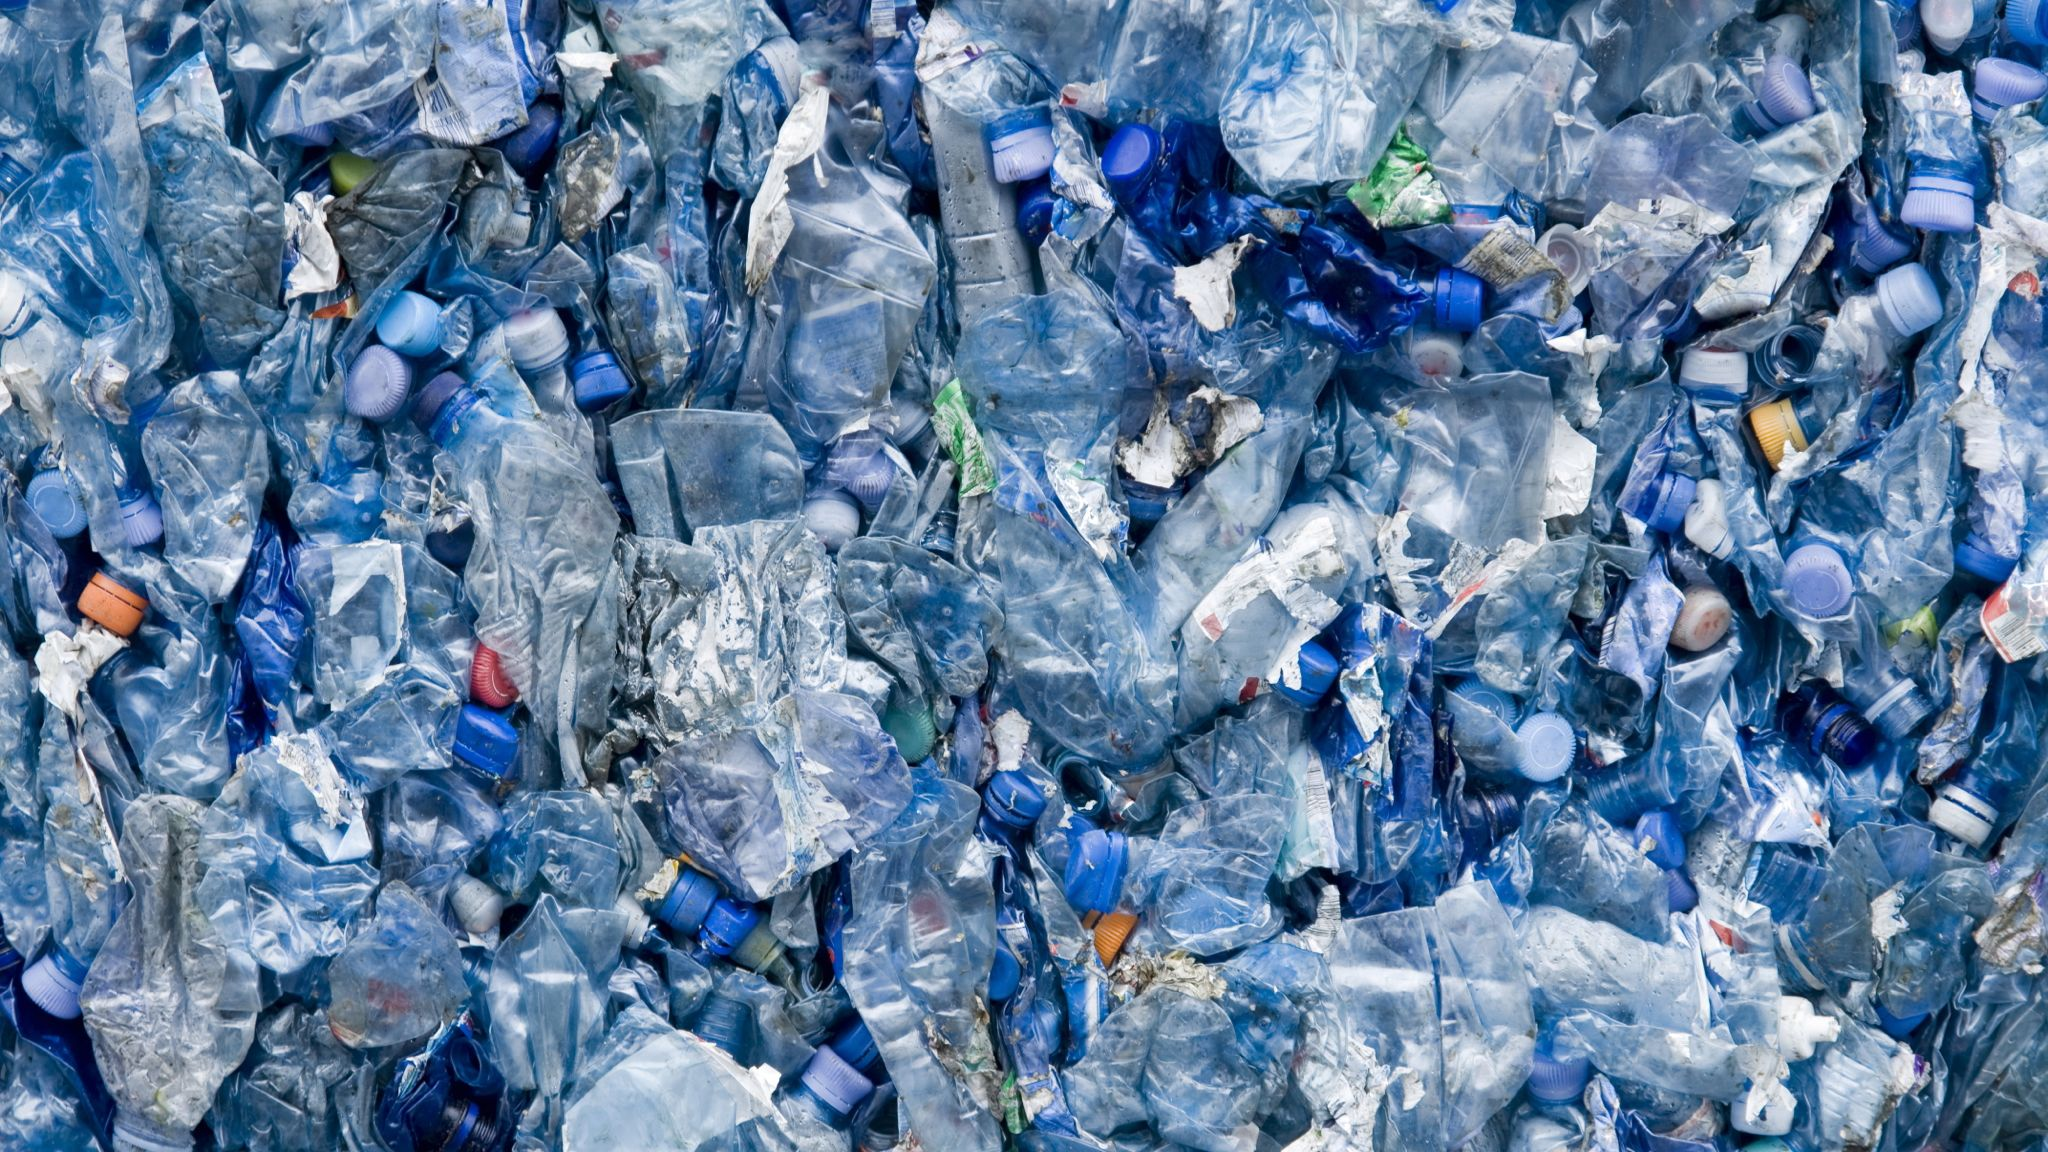 Plastic waste - a sea of crushed plastic bottles